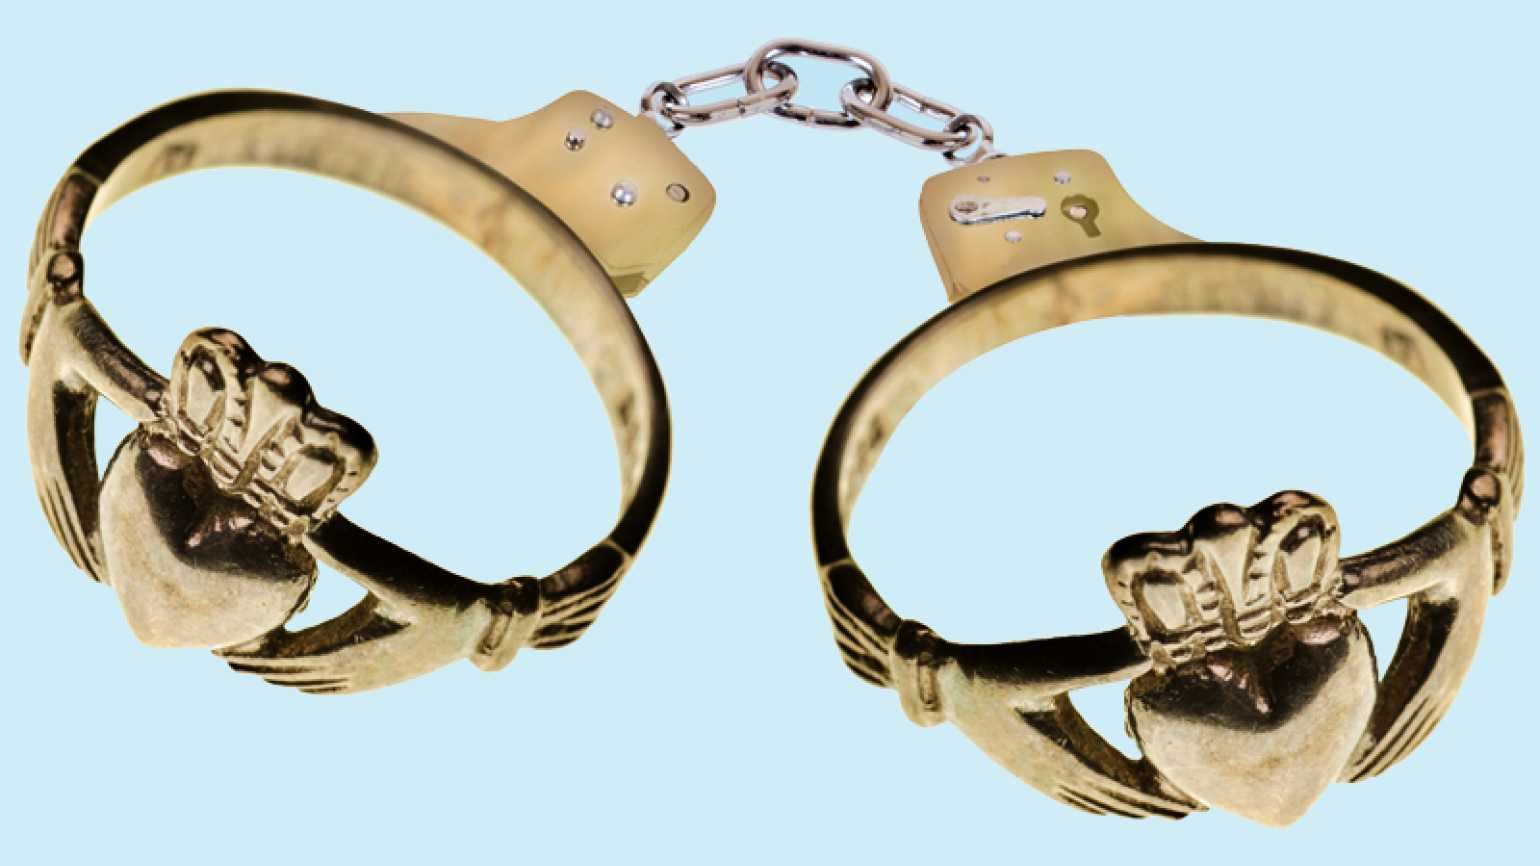 Handcuffs that resembles rings